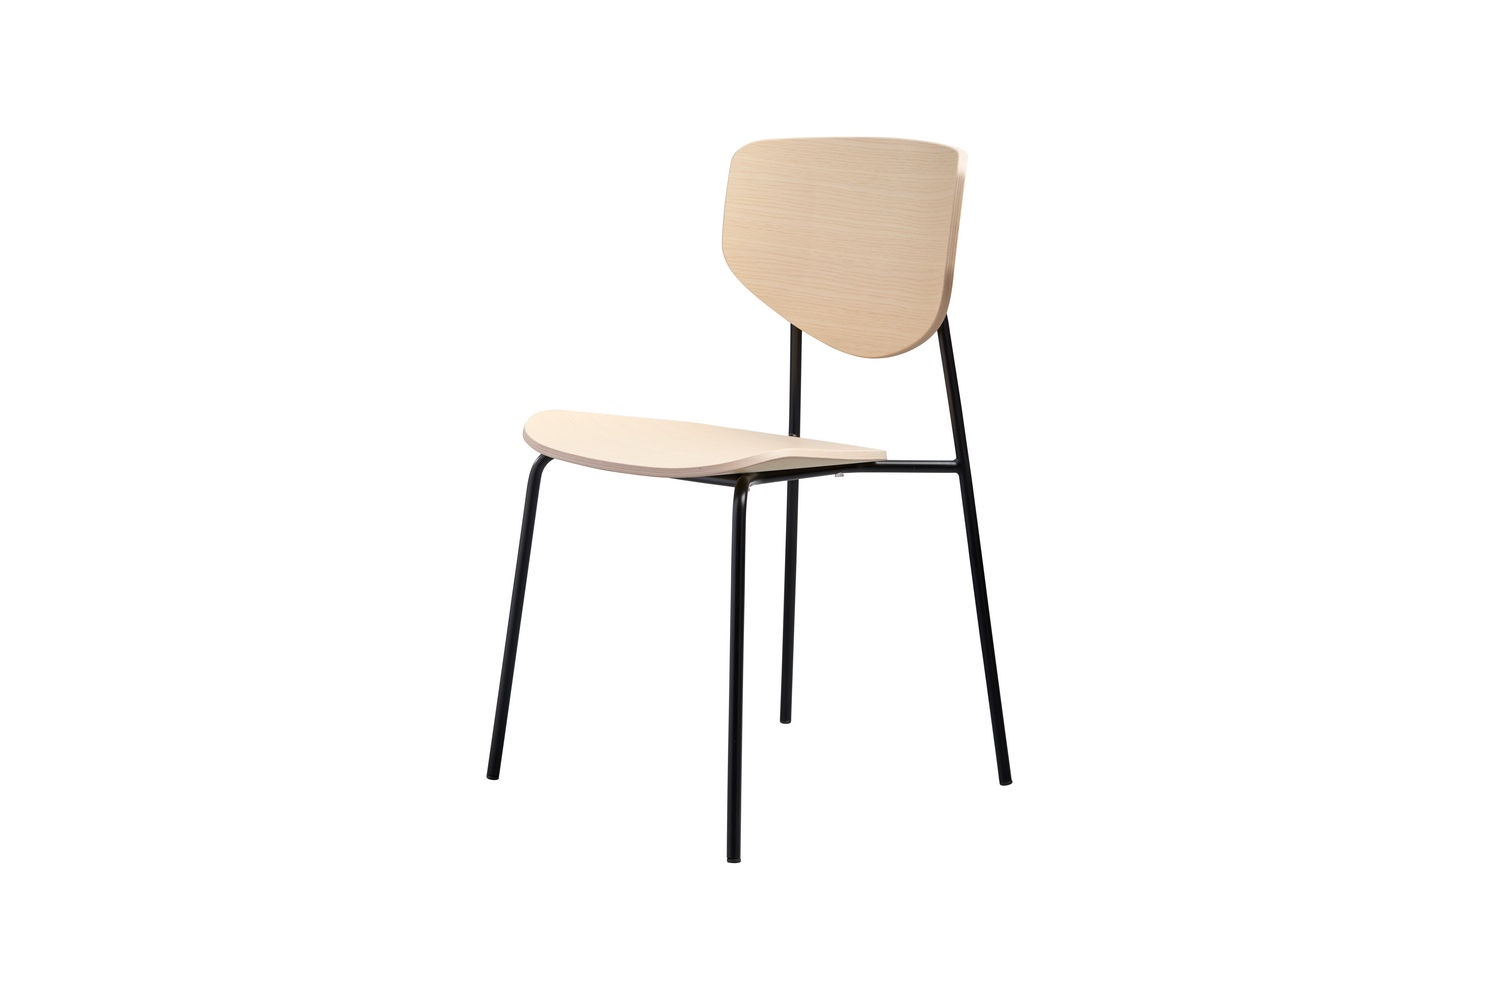 Caristo Chair By Tim Rundle For Sp01 Space Furniture